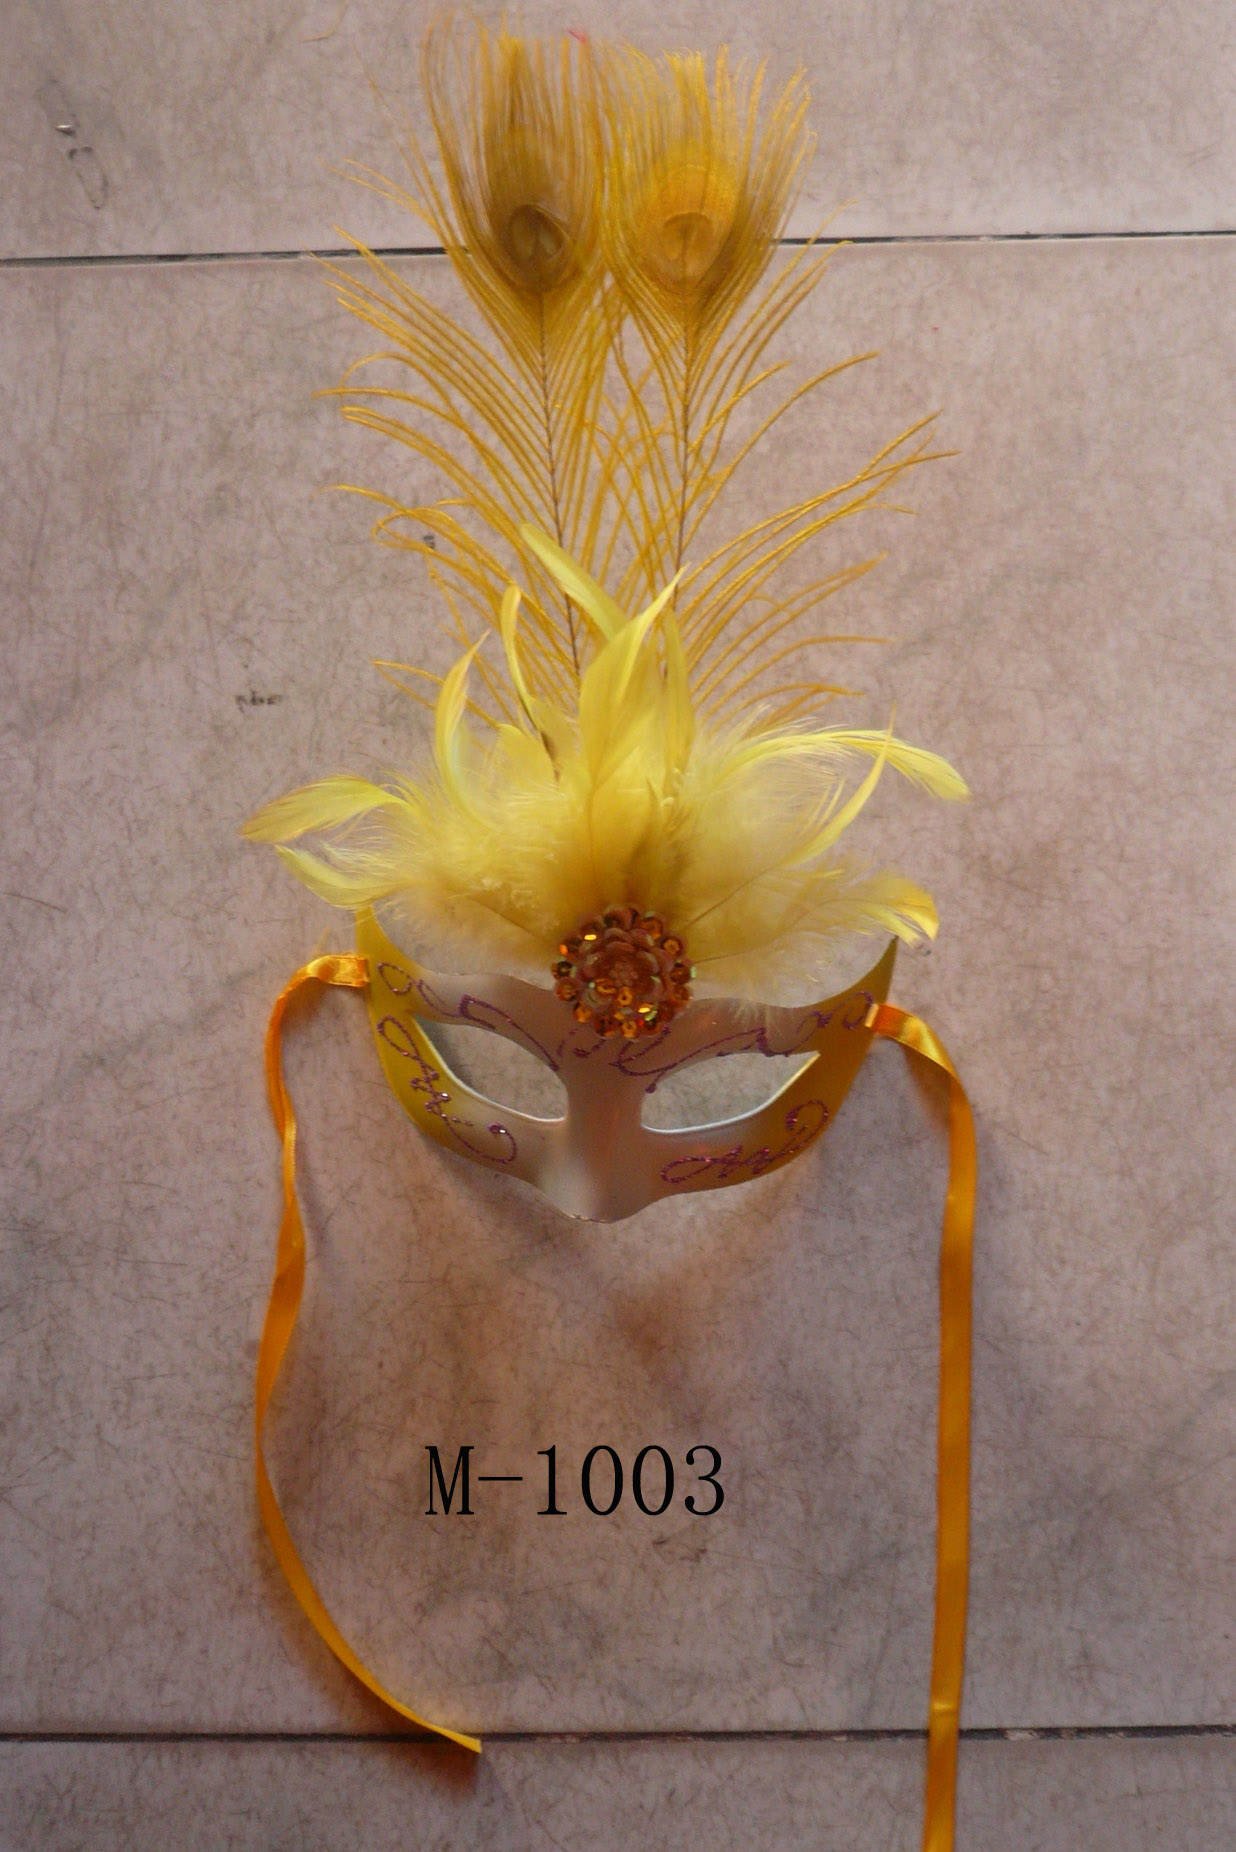 Cheap feather masks for sale - Made in China M-1003